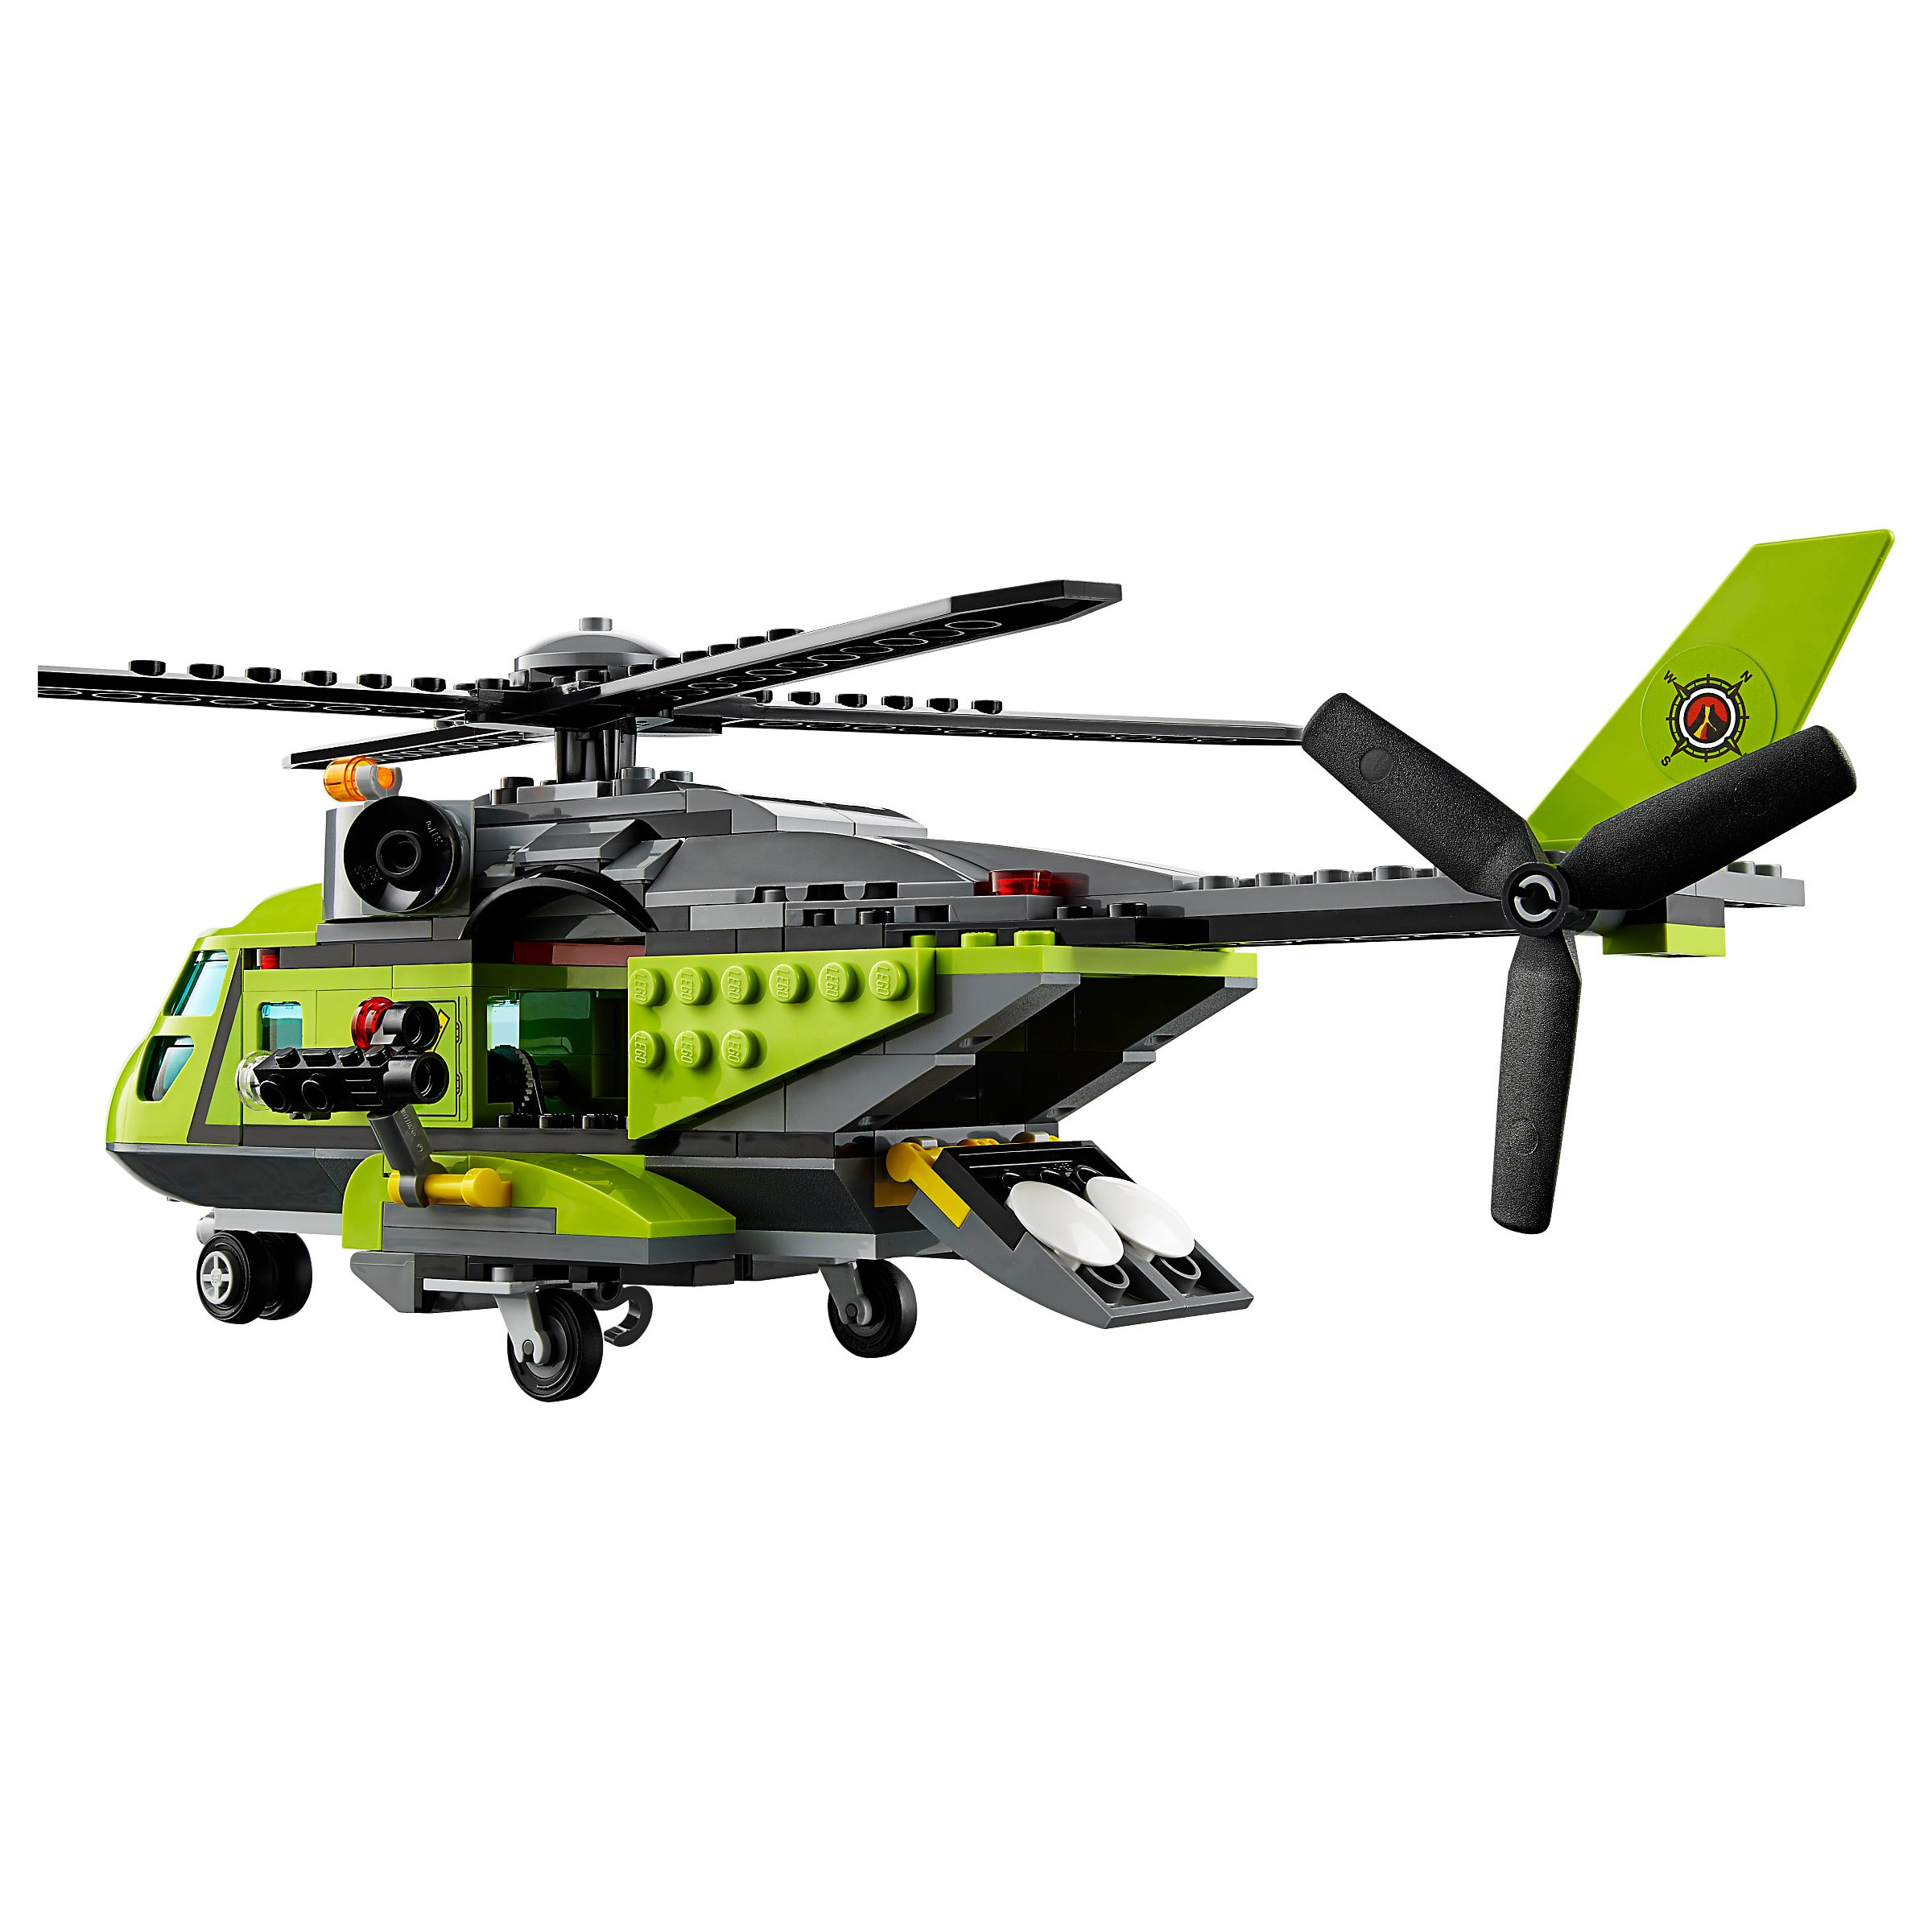 walkera helicopter supply with Lego 60123 City Volcano Supply Helicopter on A7105 Wireless Rf 2 4ghz Transceiver Module 3 3v Power Supply Module together with 78p 501 Pet Cam Aa Black further Walkera Scout X4 RC Quadcopter Spare Part IMAX B6 AC Adapter p304534 moreover Walkera Dragonfly CB180D 4CH FP CNC 519027558 as well 253213304389.